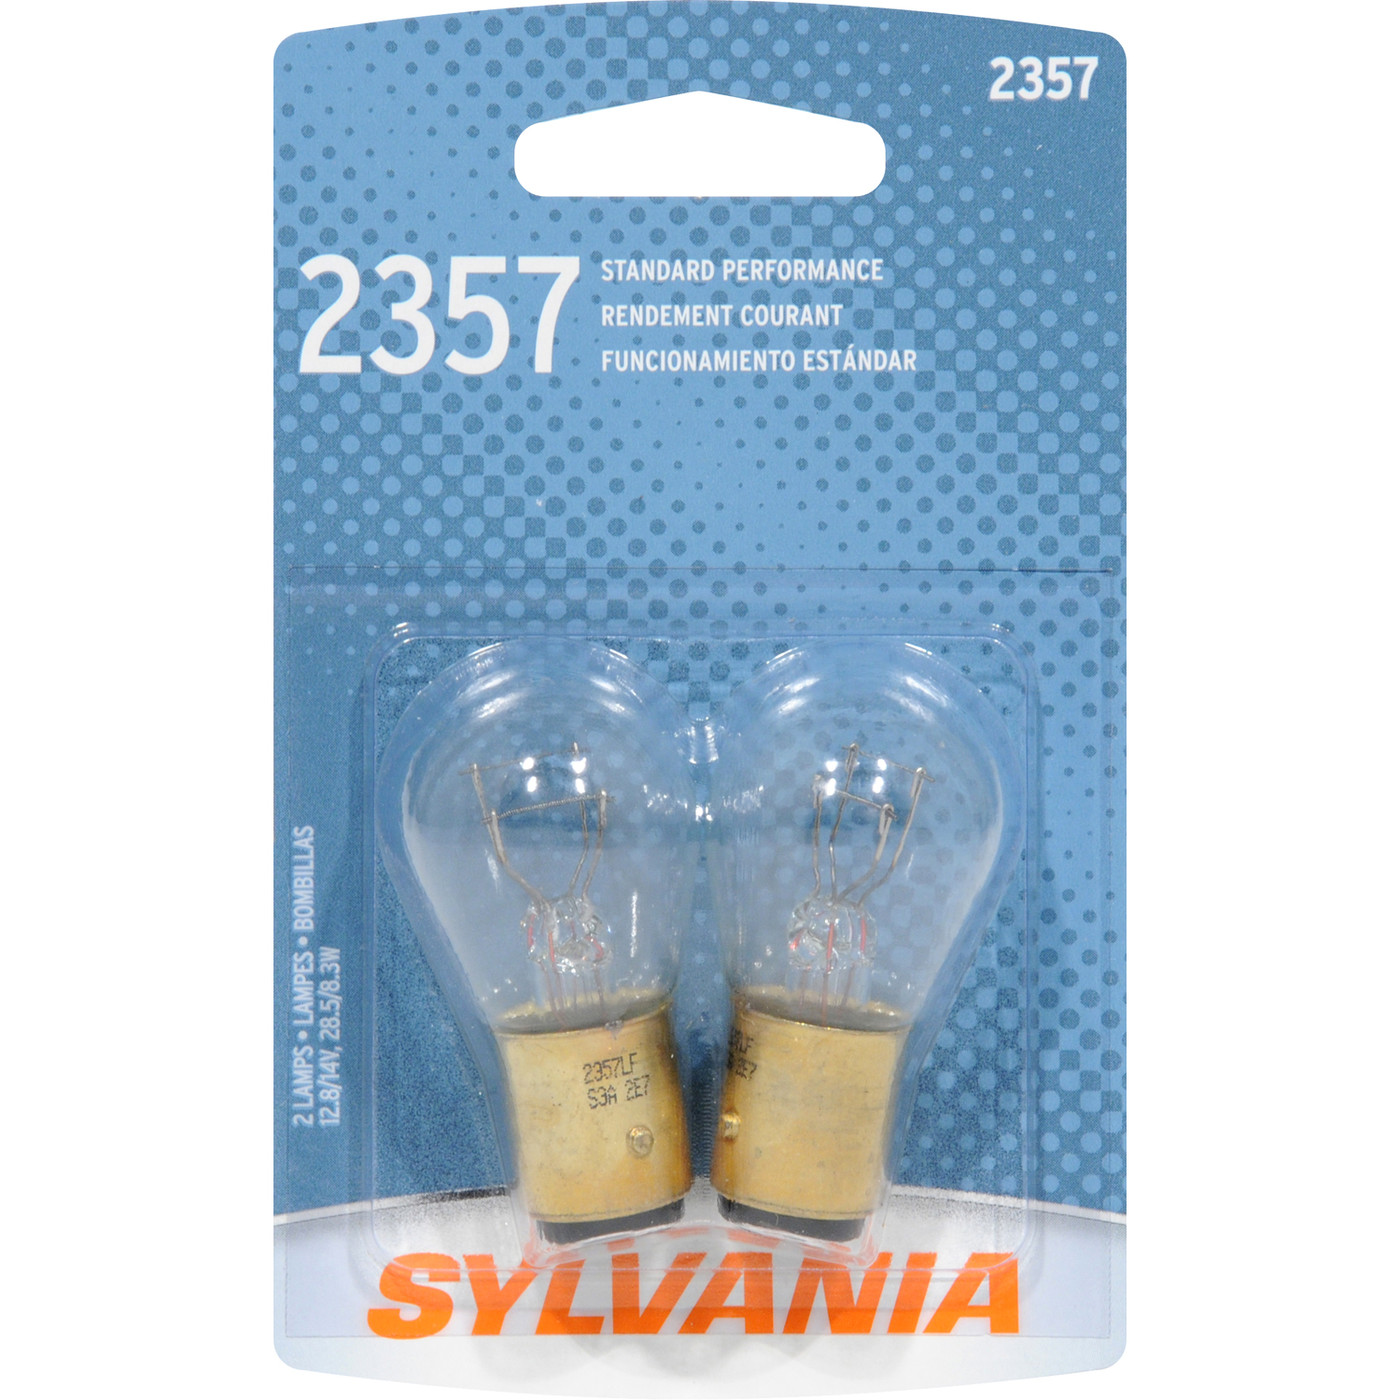 SYLVANIA RETAIL PACKS - Brake Light Bulb - SYR 2357.BP2